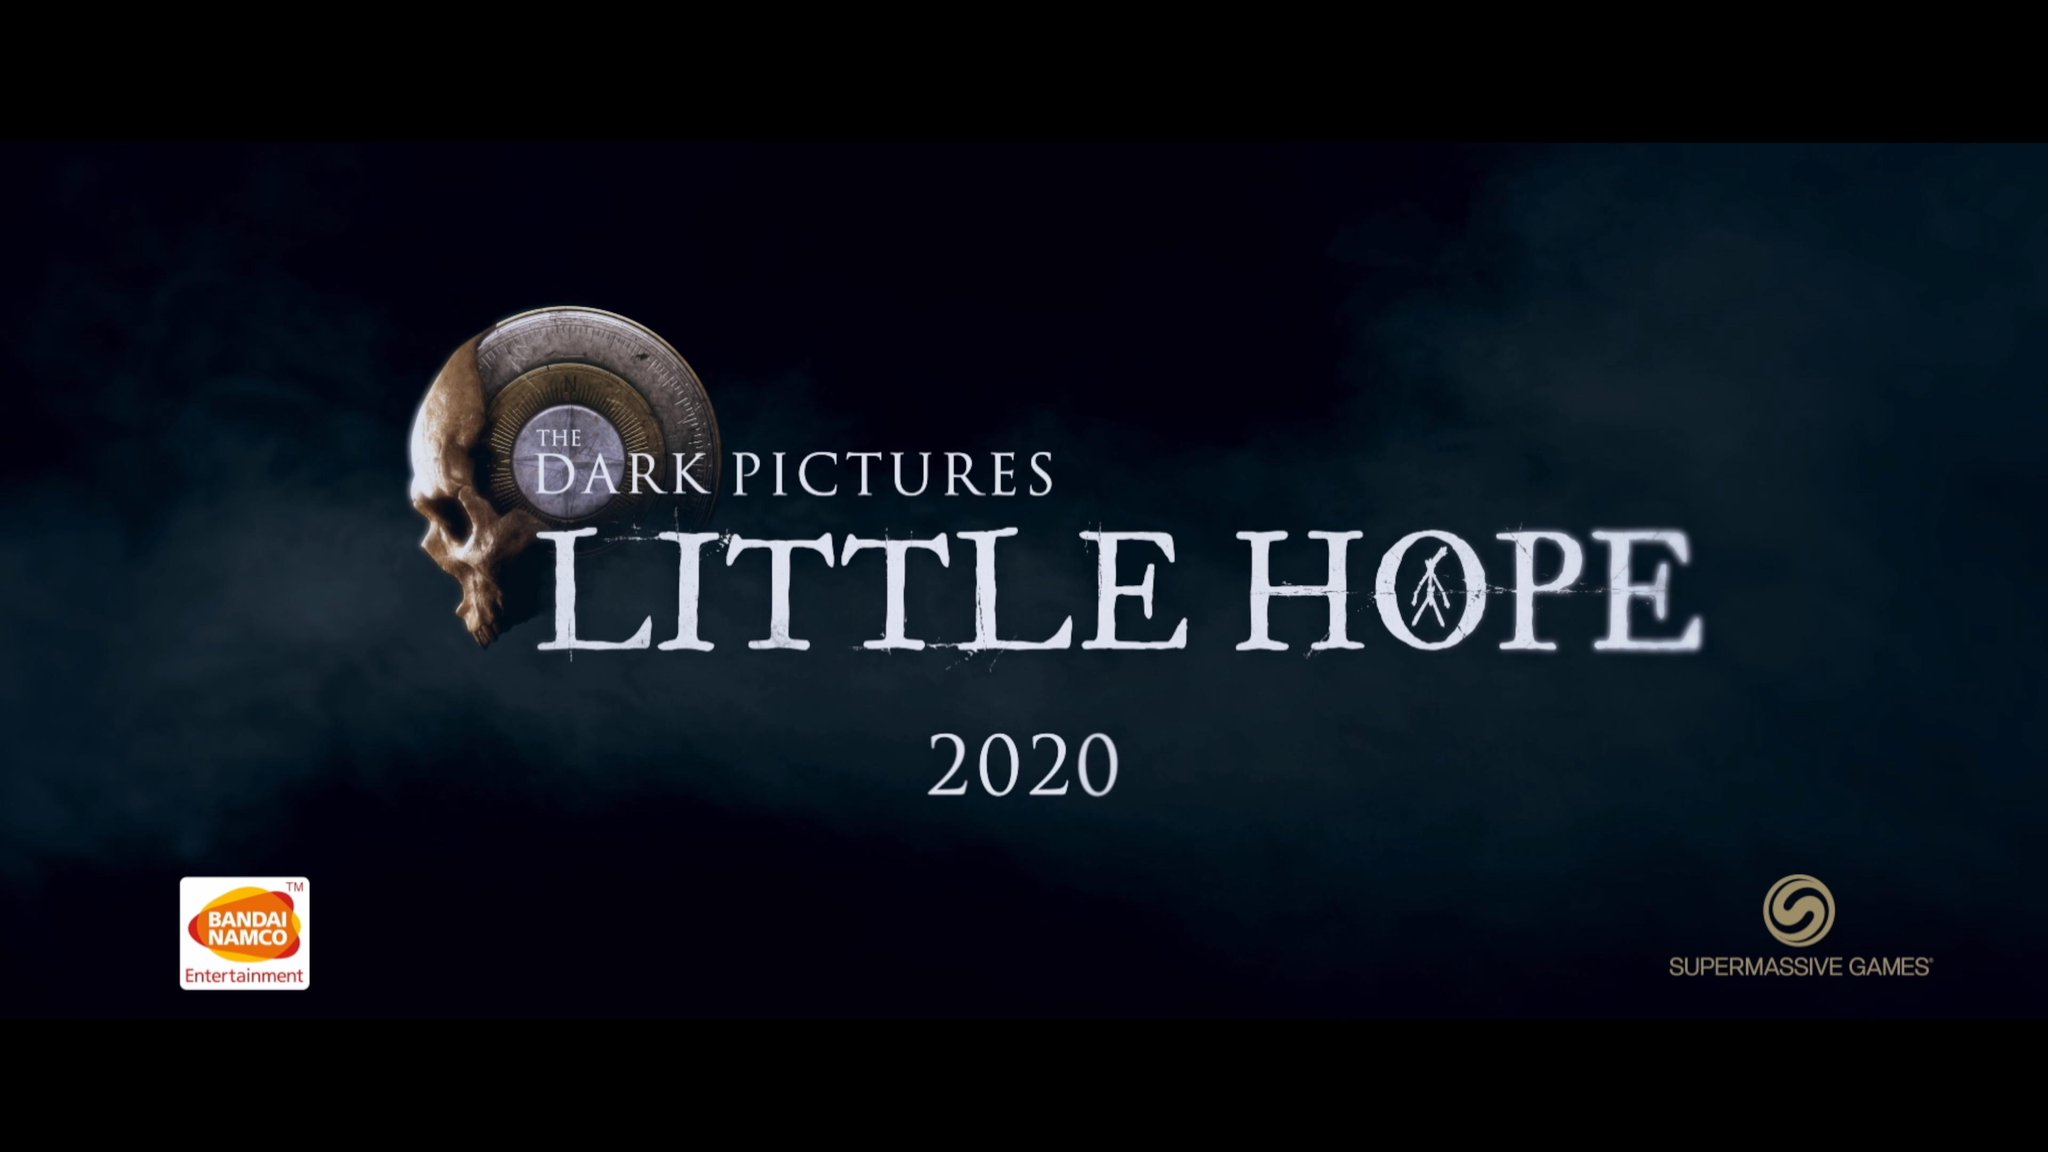 Prochain match dans Dark Pictures anthologie Little Hope taquine